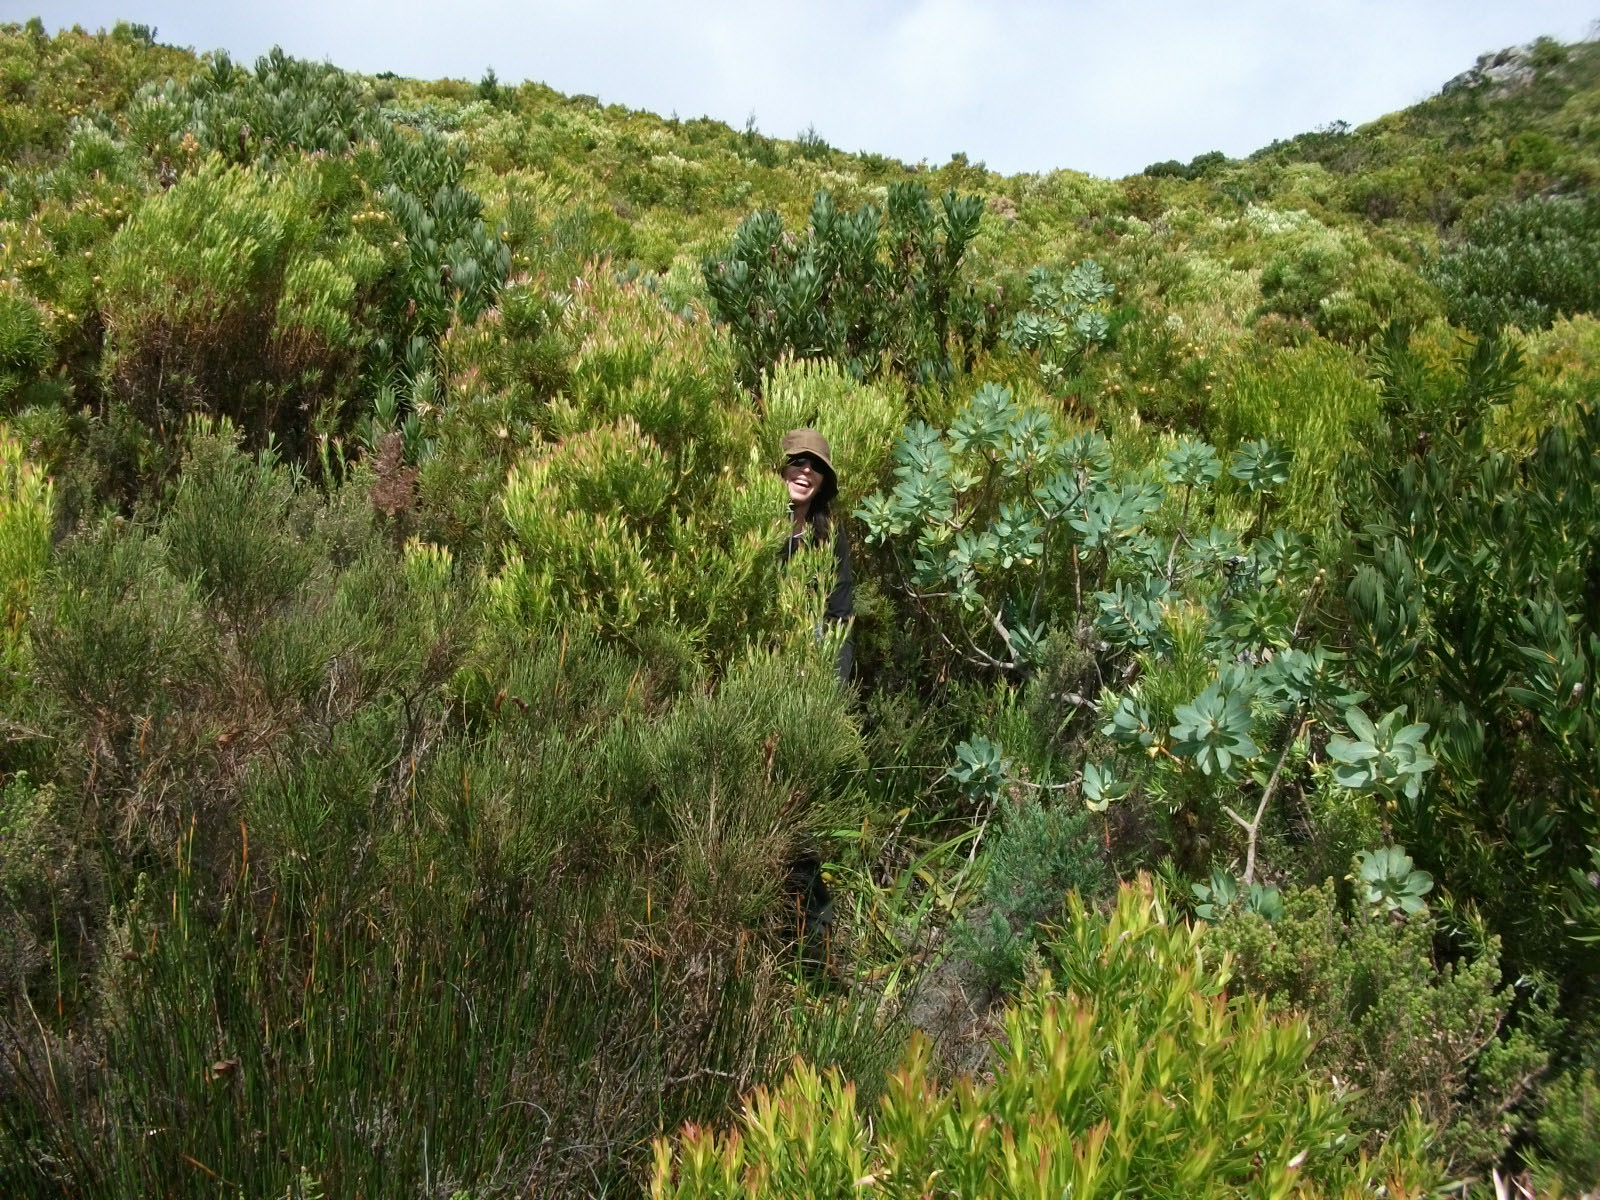 Nita lost in the fynbos!